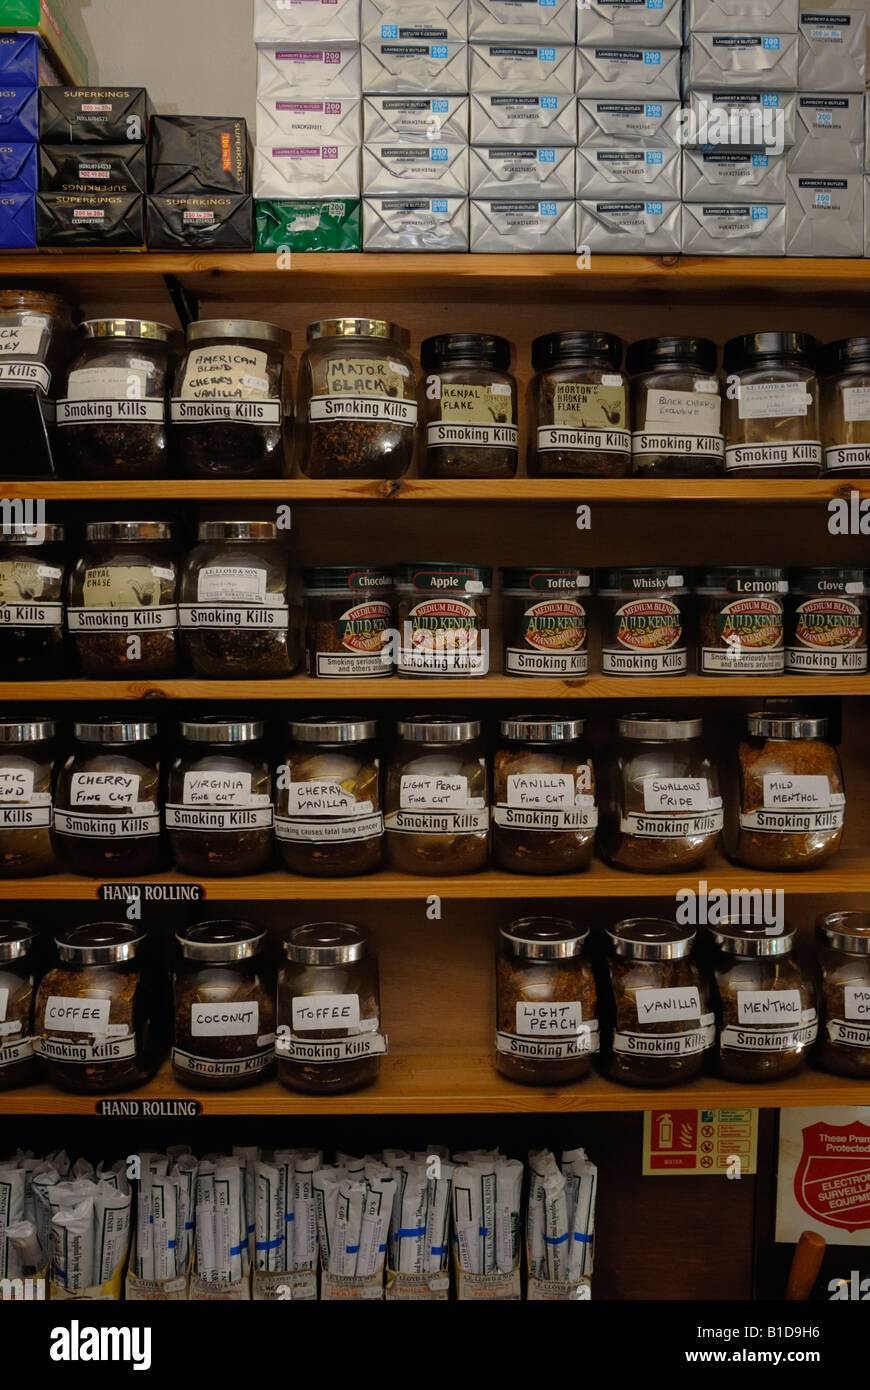 Selection of hand rolling and pipe tobaccos in jars in a Tobbaconists, Aberystwyth, Wales - Stock Image